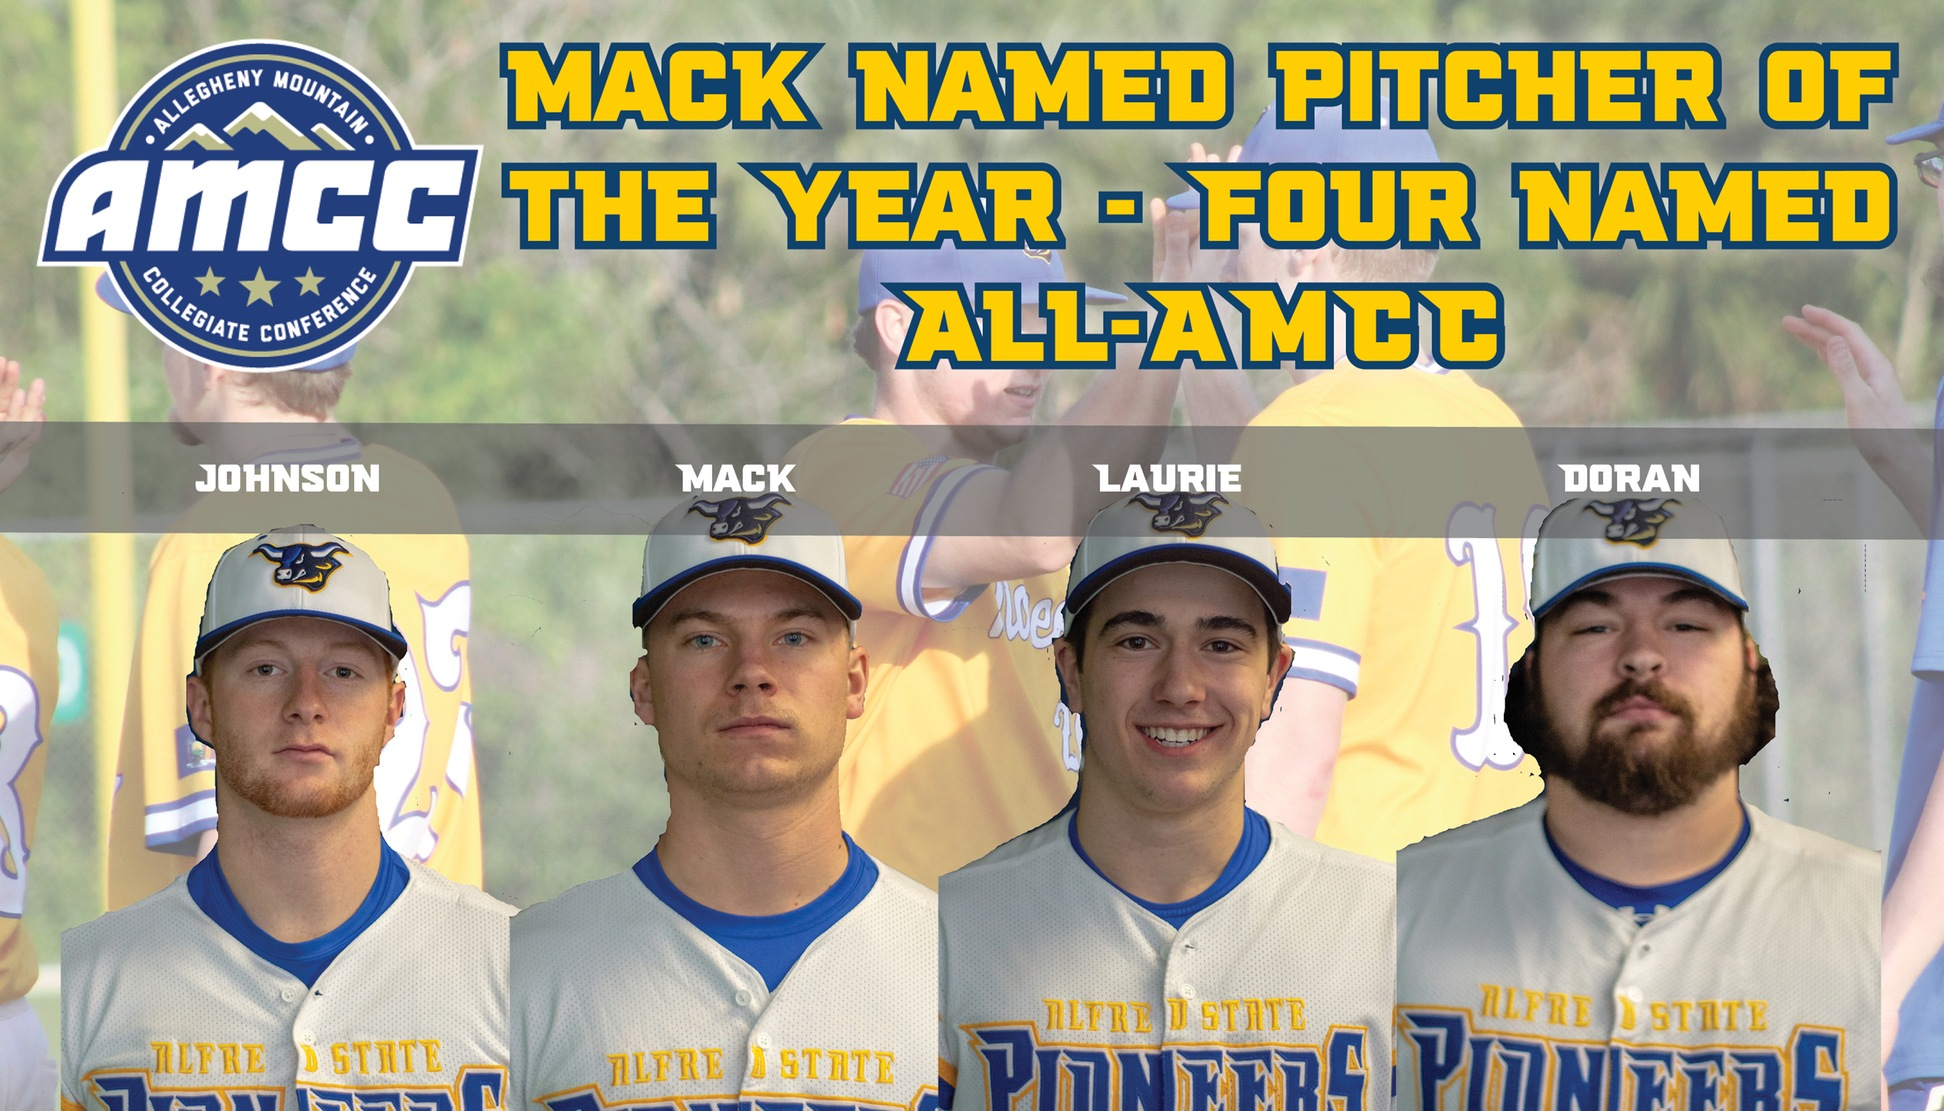 All-AMCC Baseball honorees